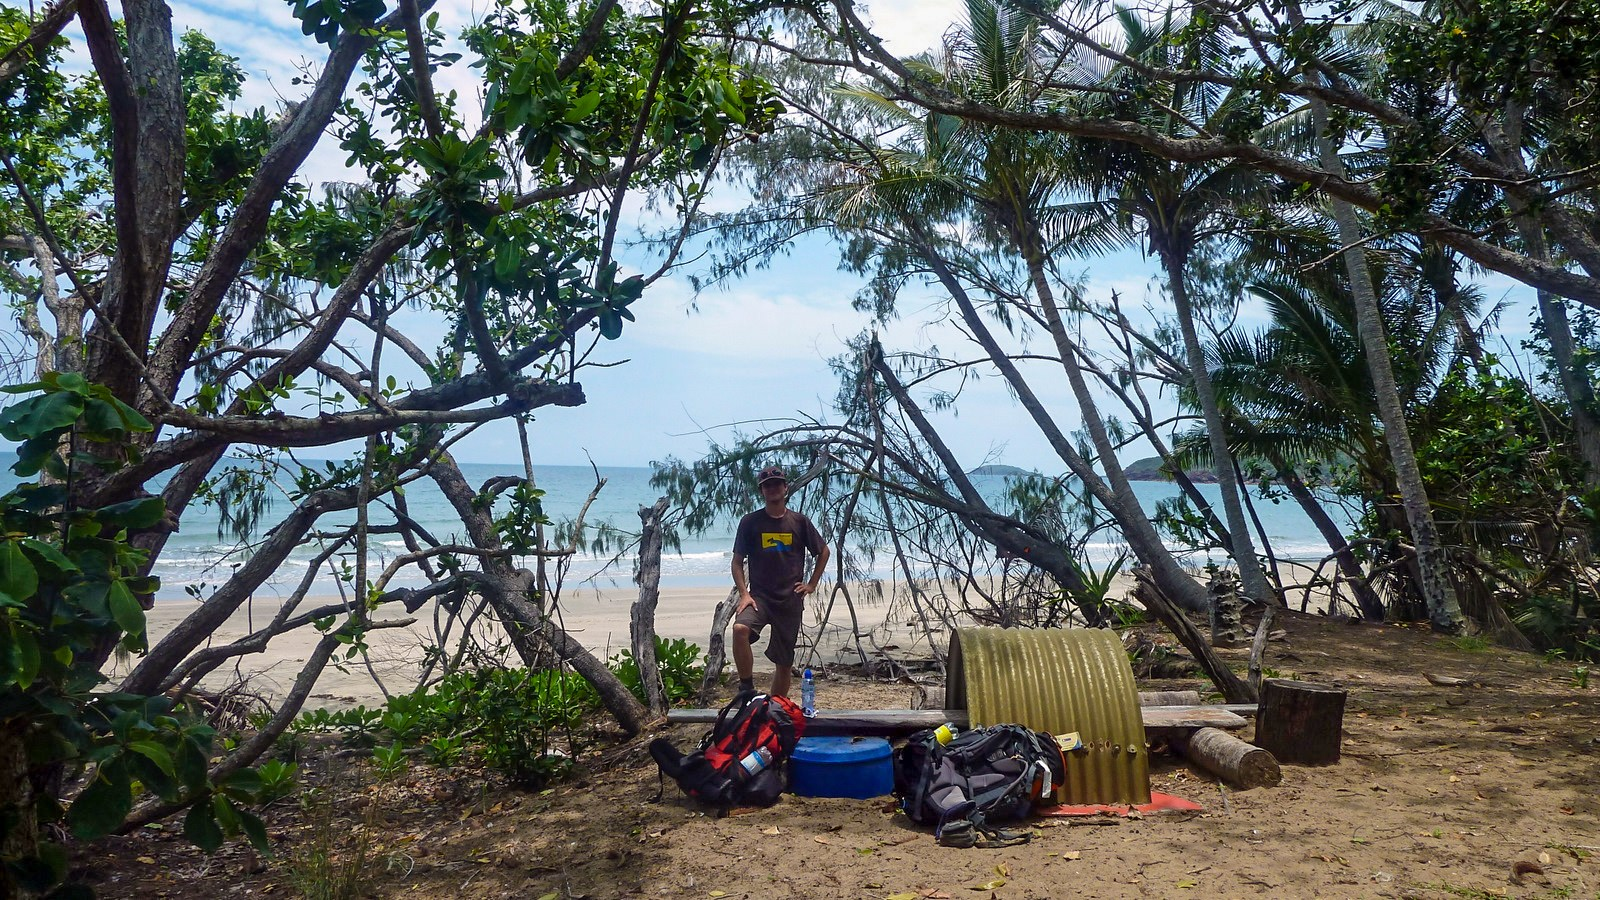 this is a photo of a hiker taking a break at a shady spot close to the beach of hinchinbrook island